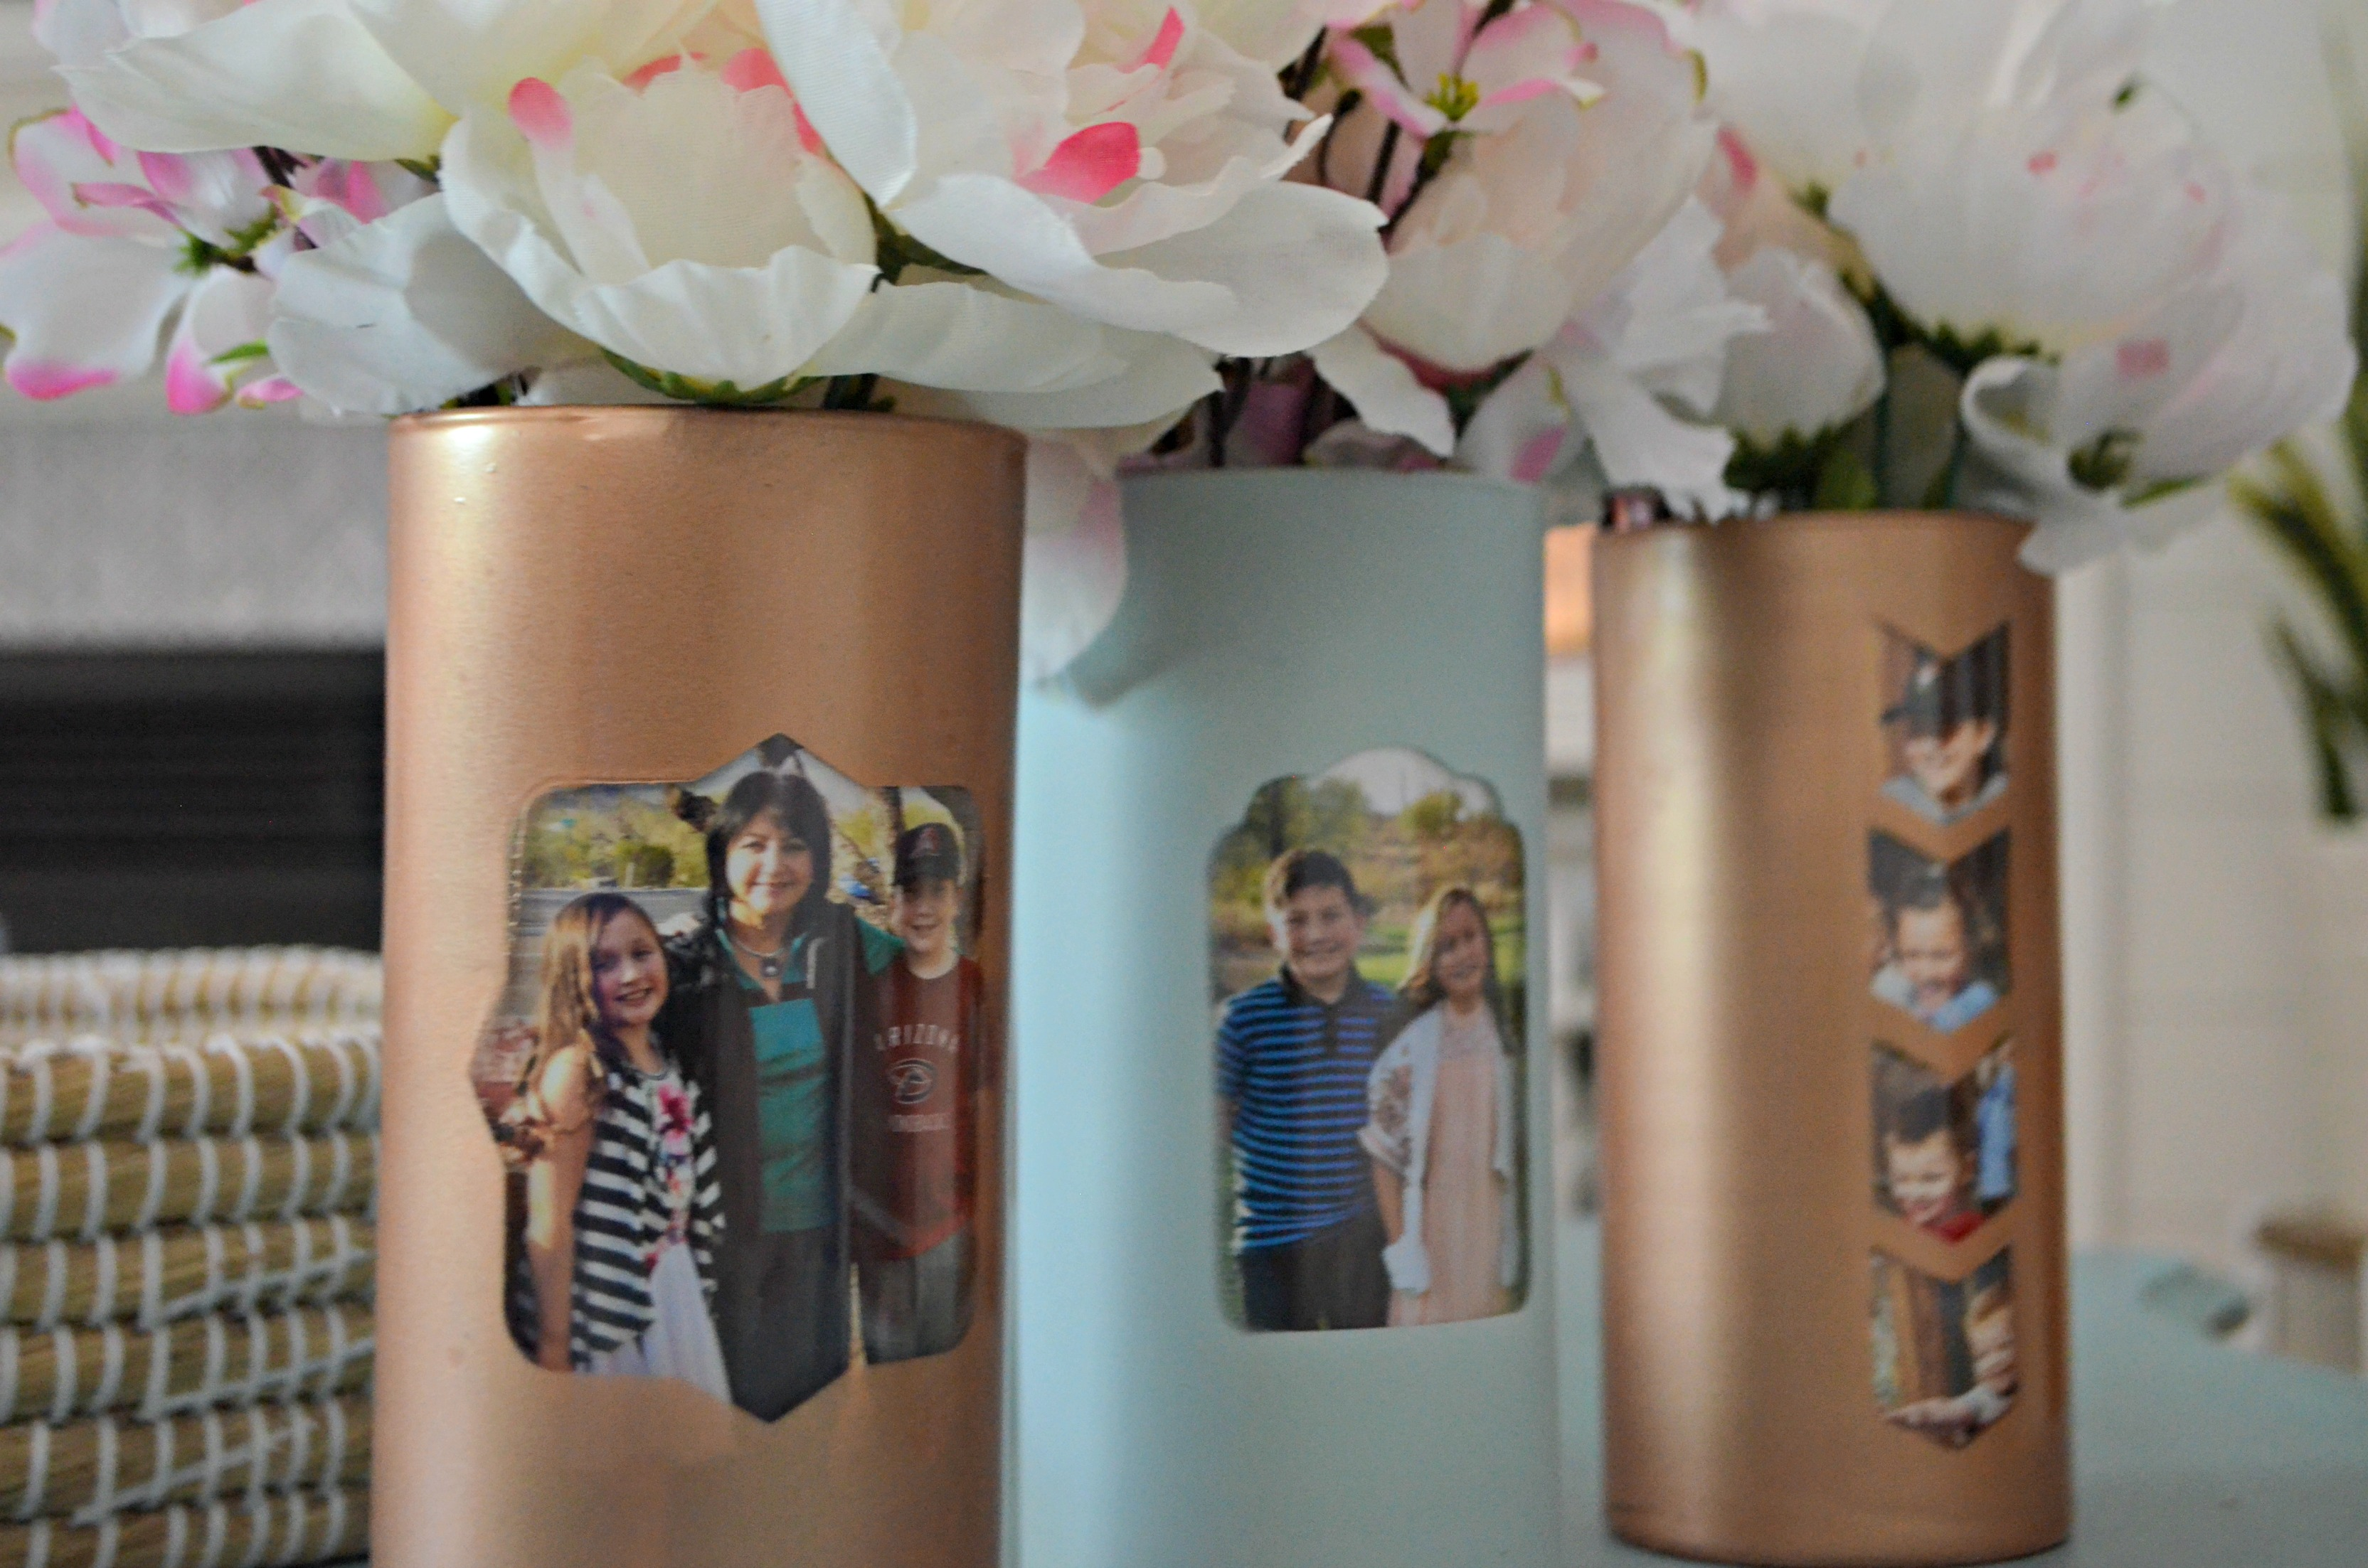 These vases make perfect centerpieces for weddings, graduations, and other festive occasions.